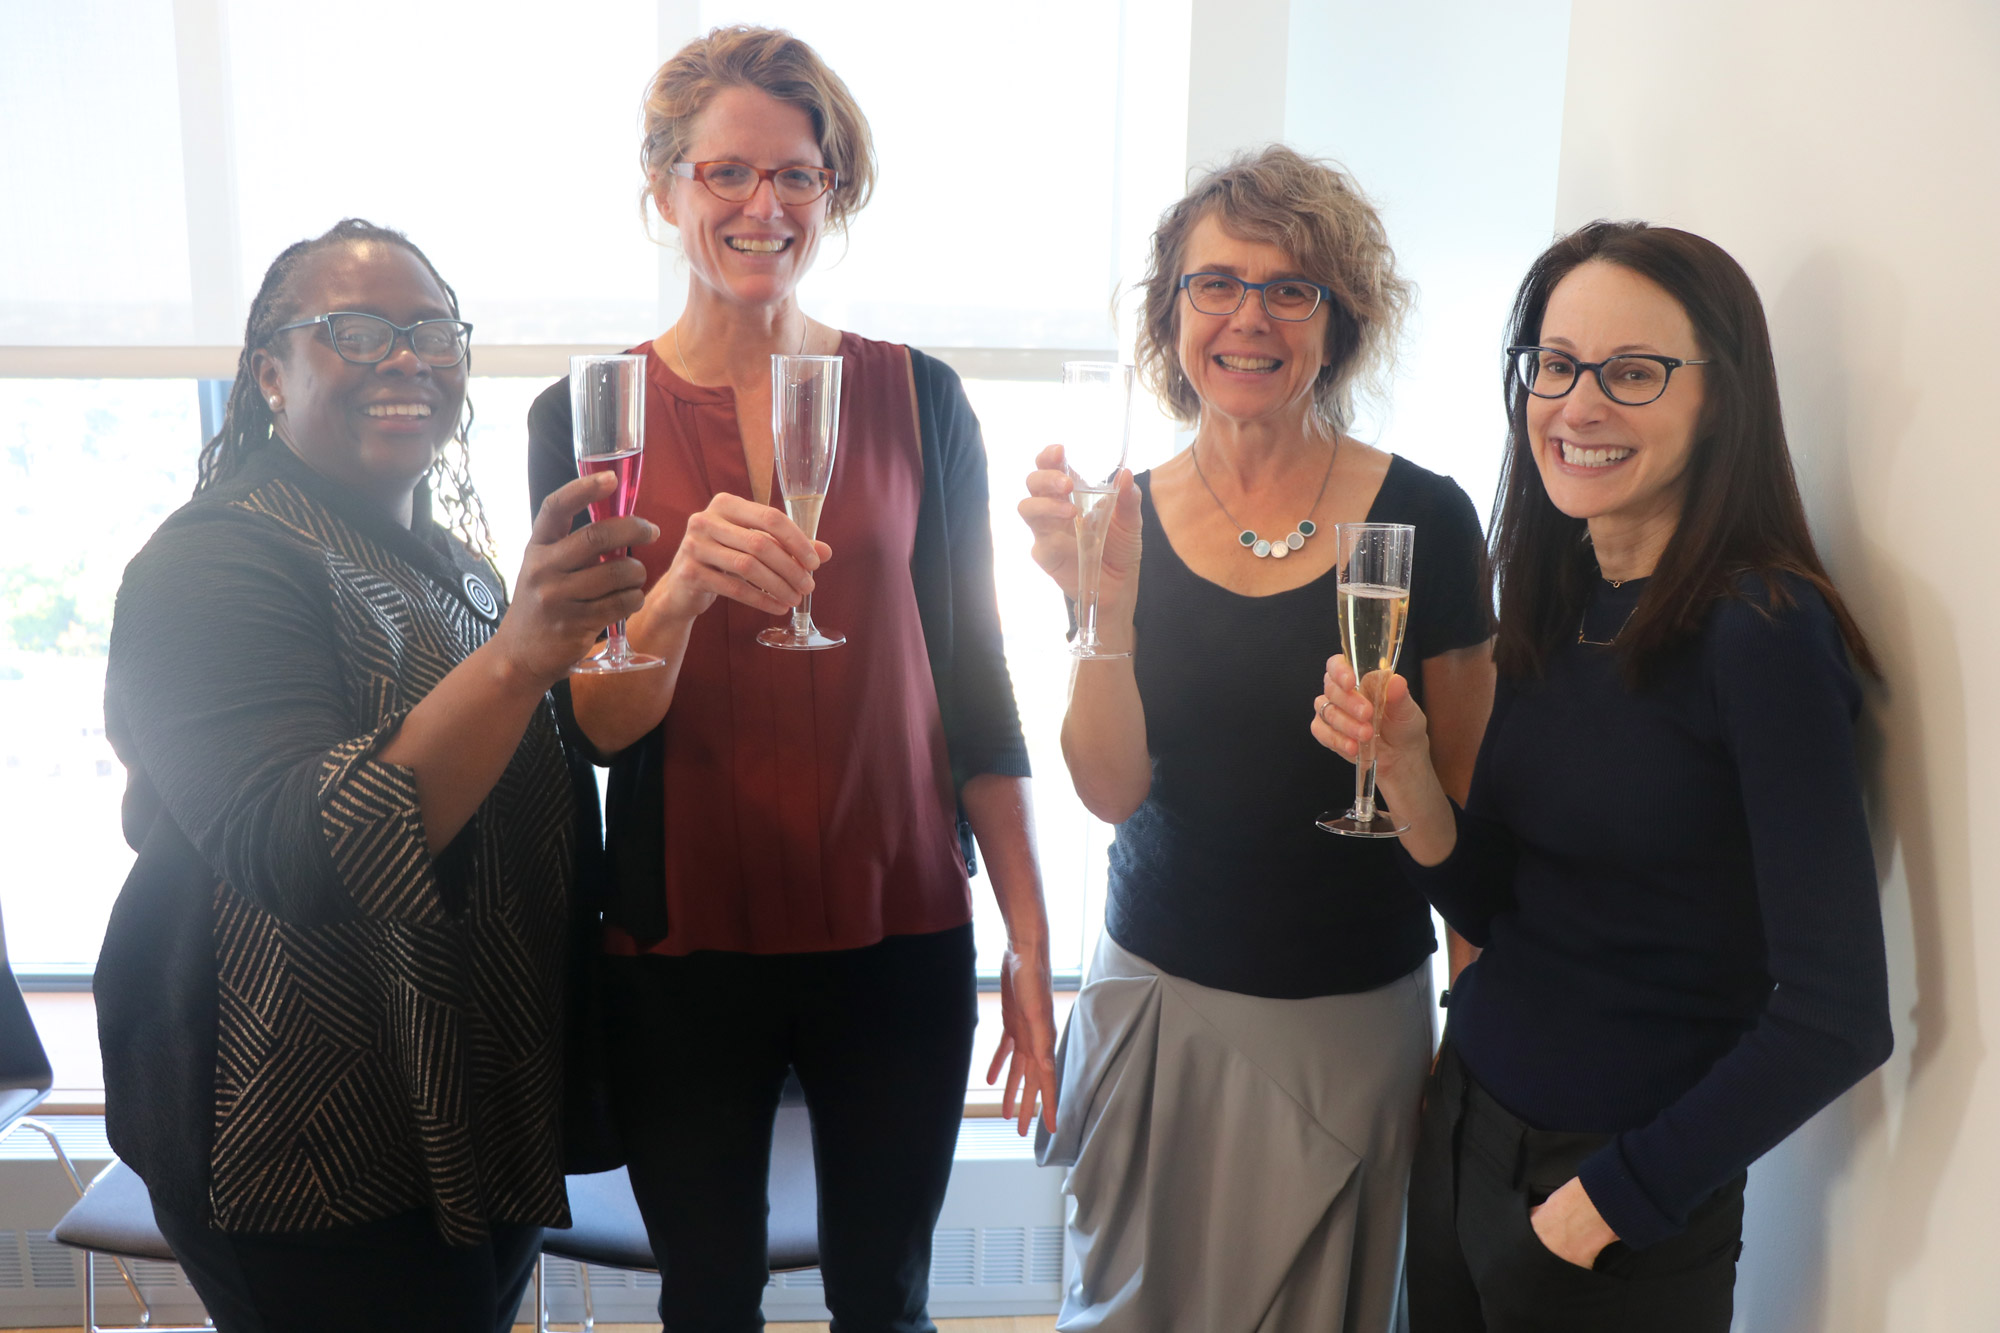 Angela Onwauchi-Willig (from left), Kristin Collins, Stacey Dogan, and 2019 MacArthur Fellowship winner Danielle Citron celebrate Citron's MacArthur Fellowship.